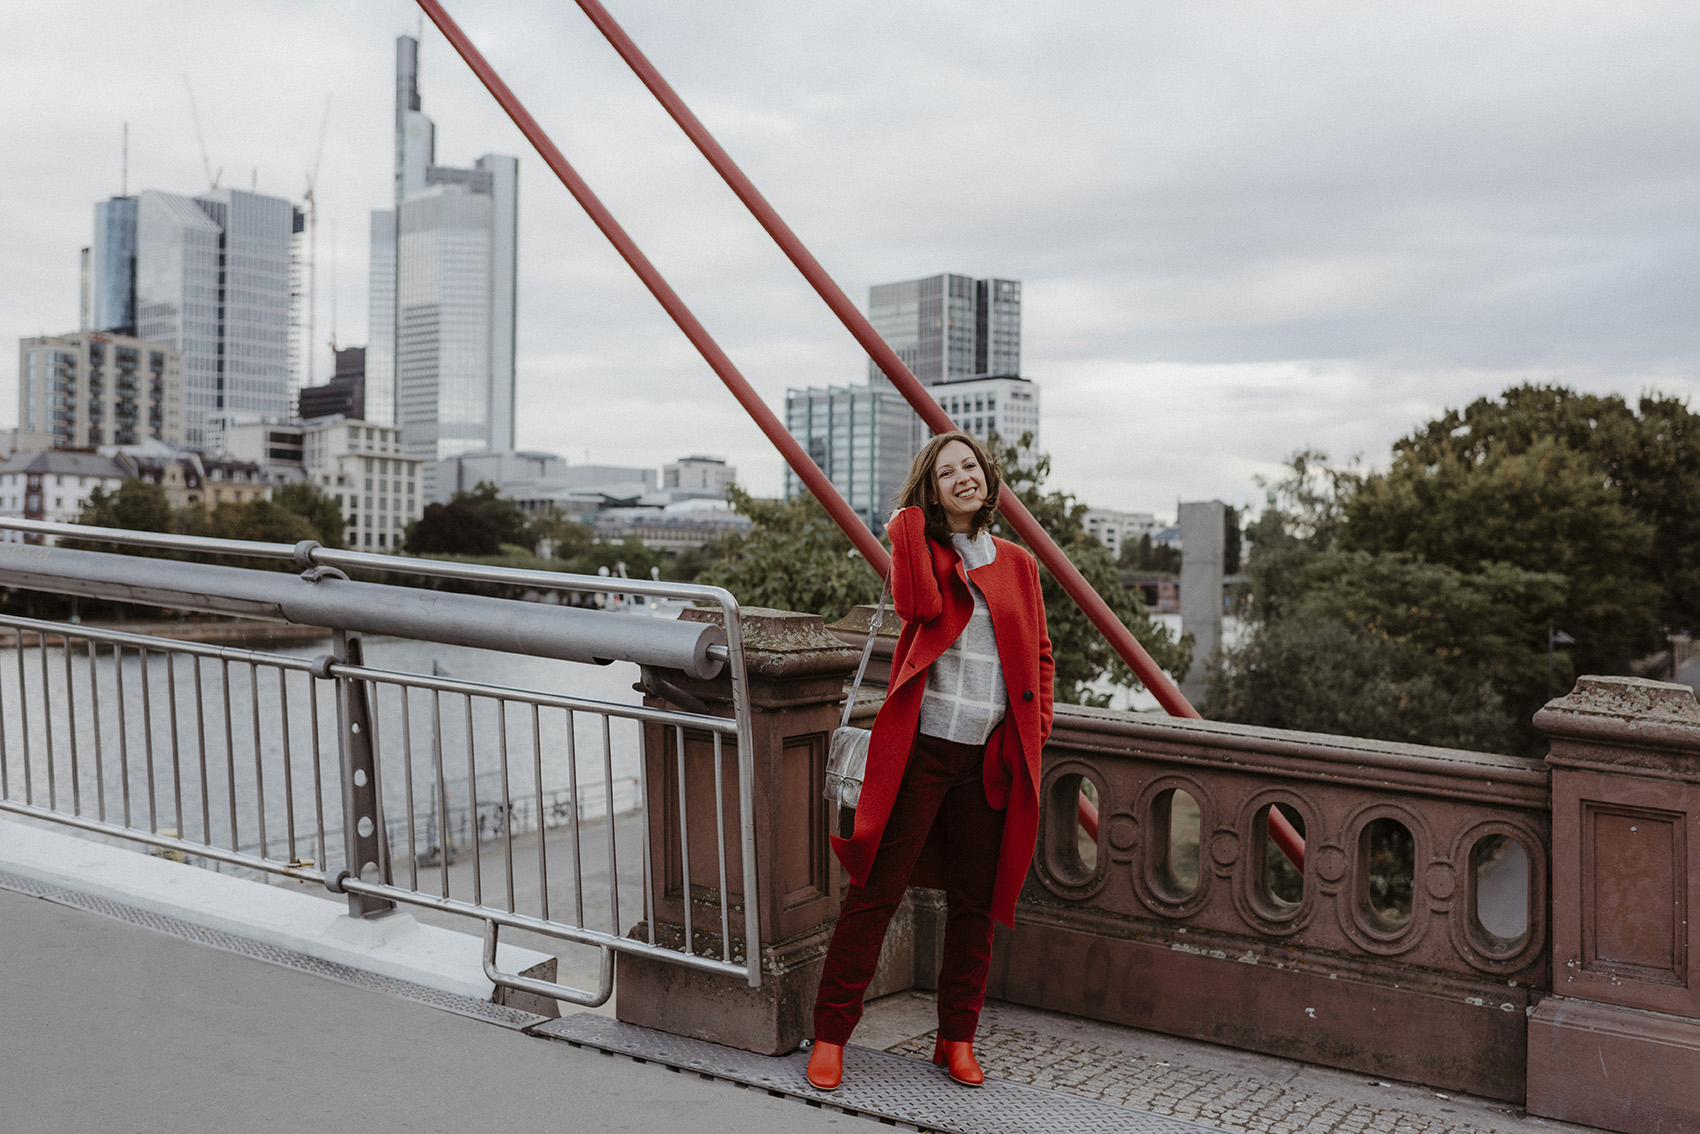 greenlooksgreat-ethical-fashion-herbst-look-rot